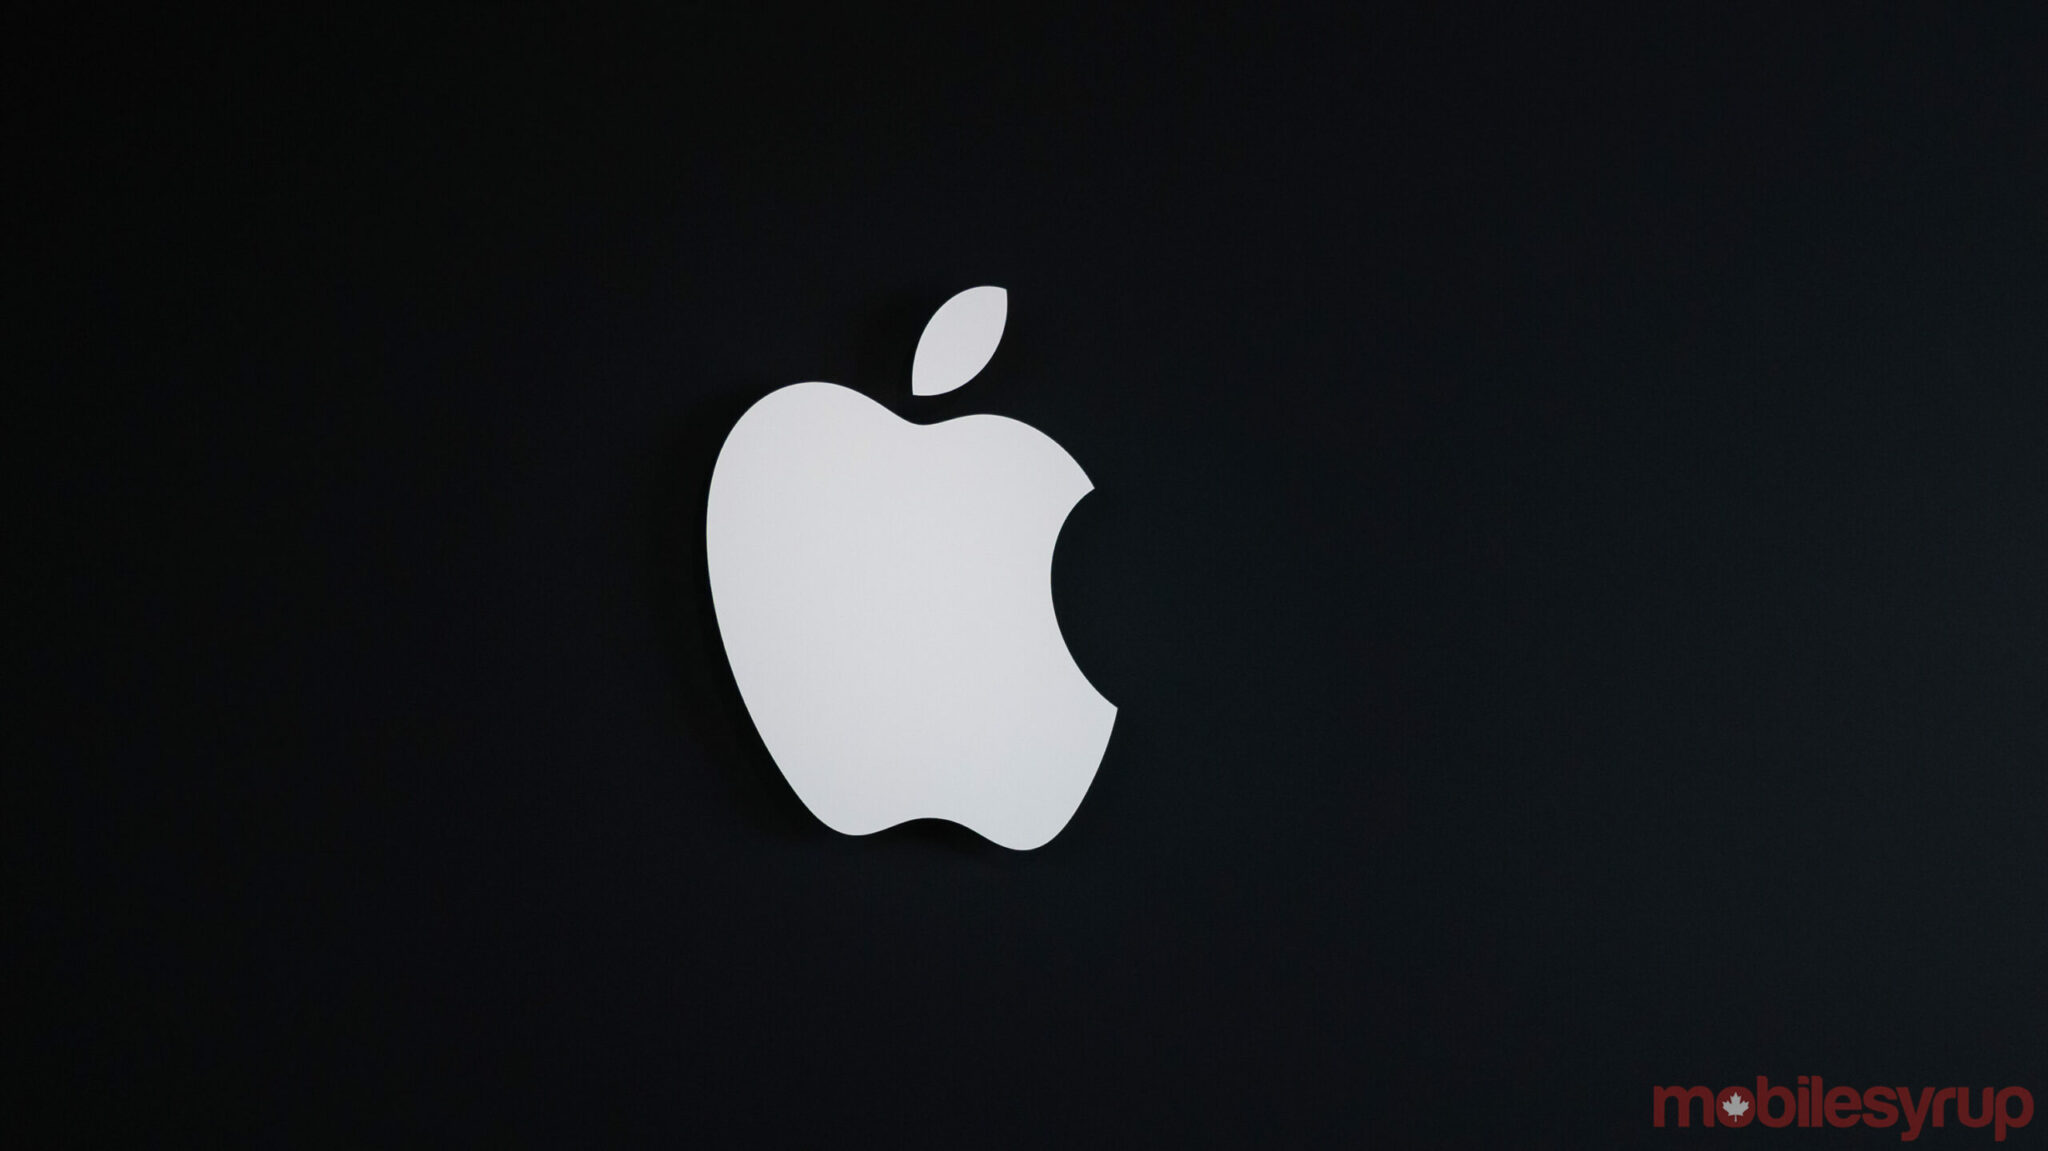 No Apple event on March 16th according to Mark Gurman